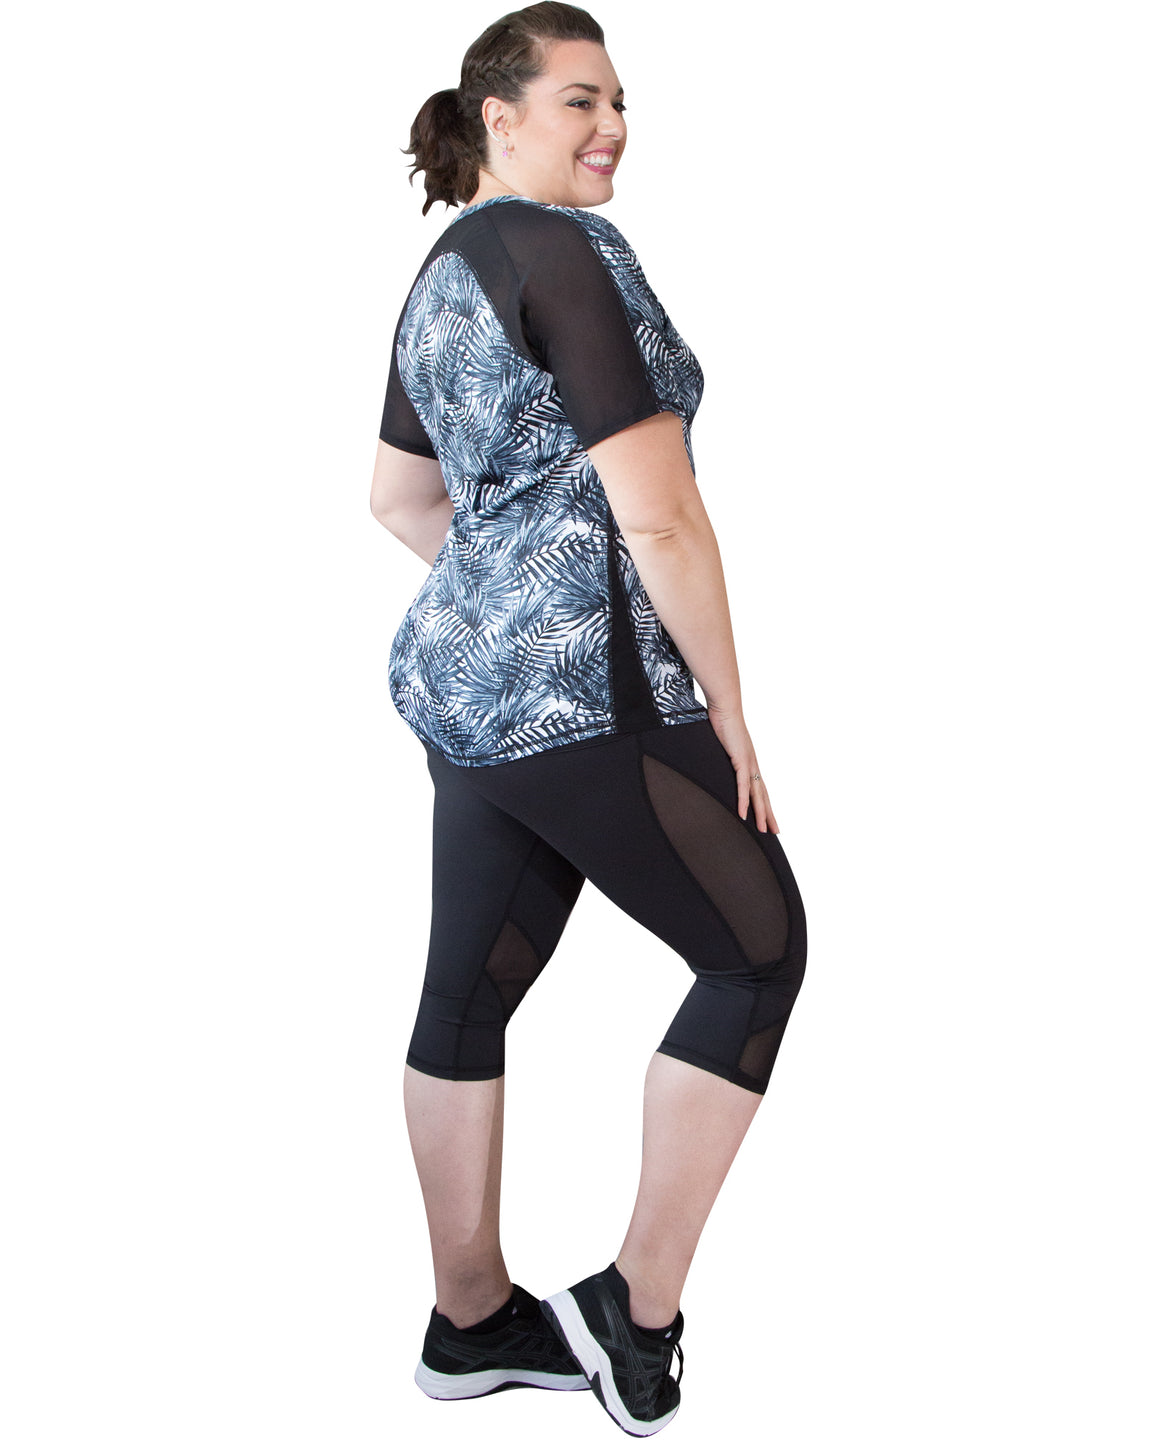 Spirit Short Sleeve Sports Top | Curvy Chic Sports